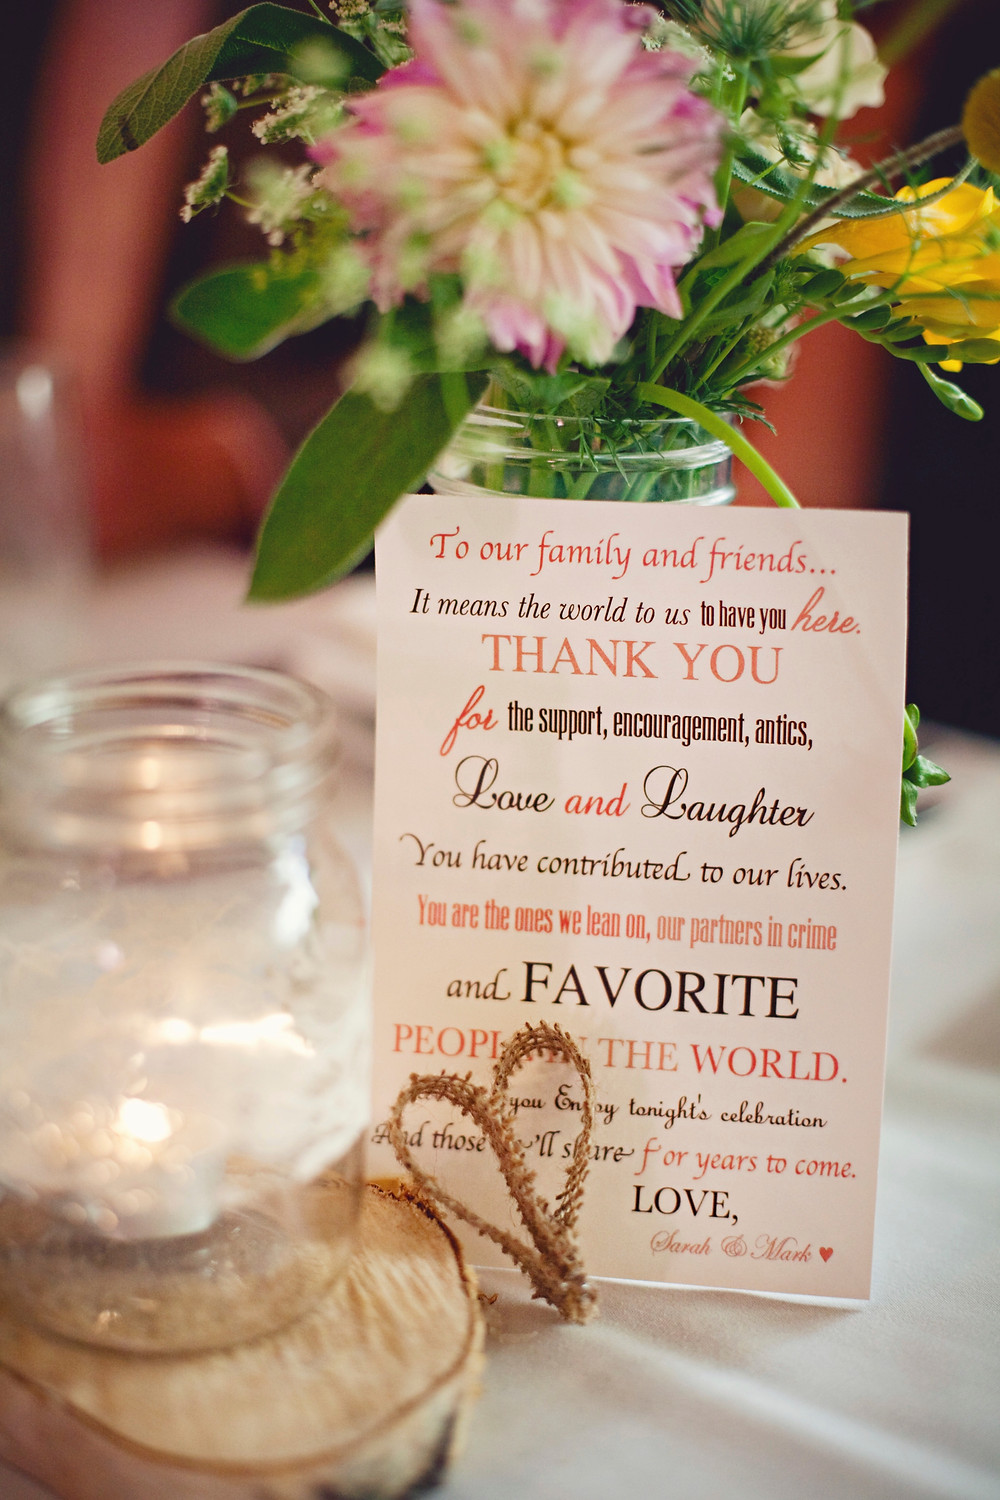 A thank you note sits on a table set at a rustic Italian inspired wedding with romantic garden flowers, wooden rounds, and mason jars wrapped with lace awaits guests.